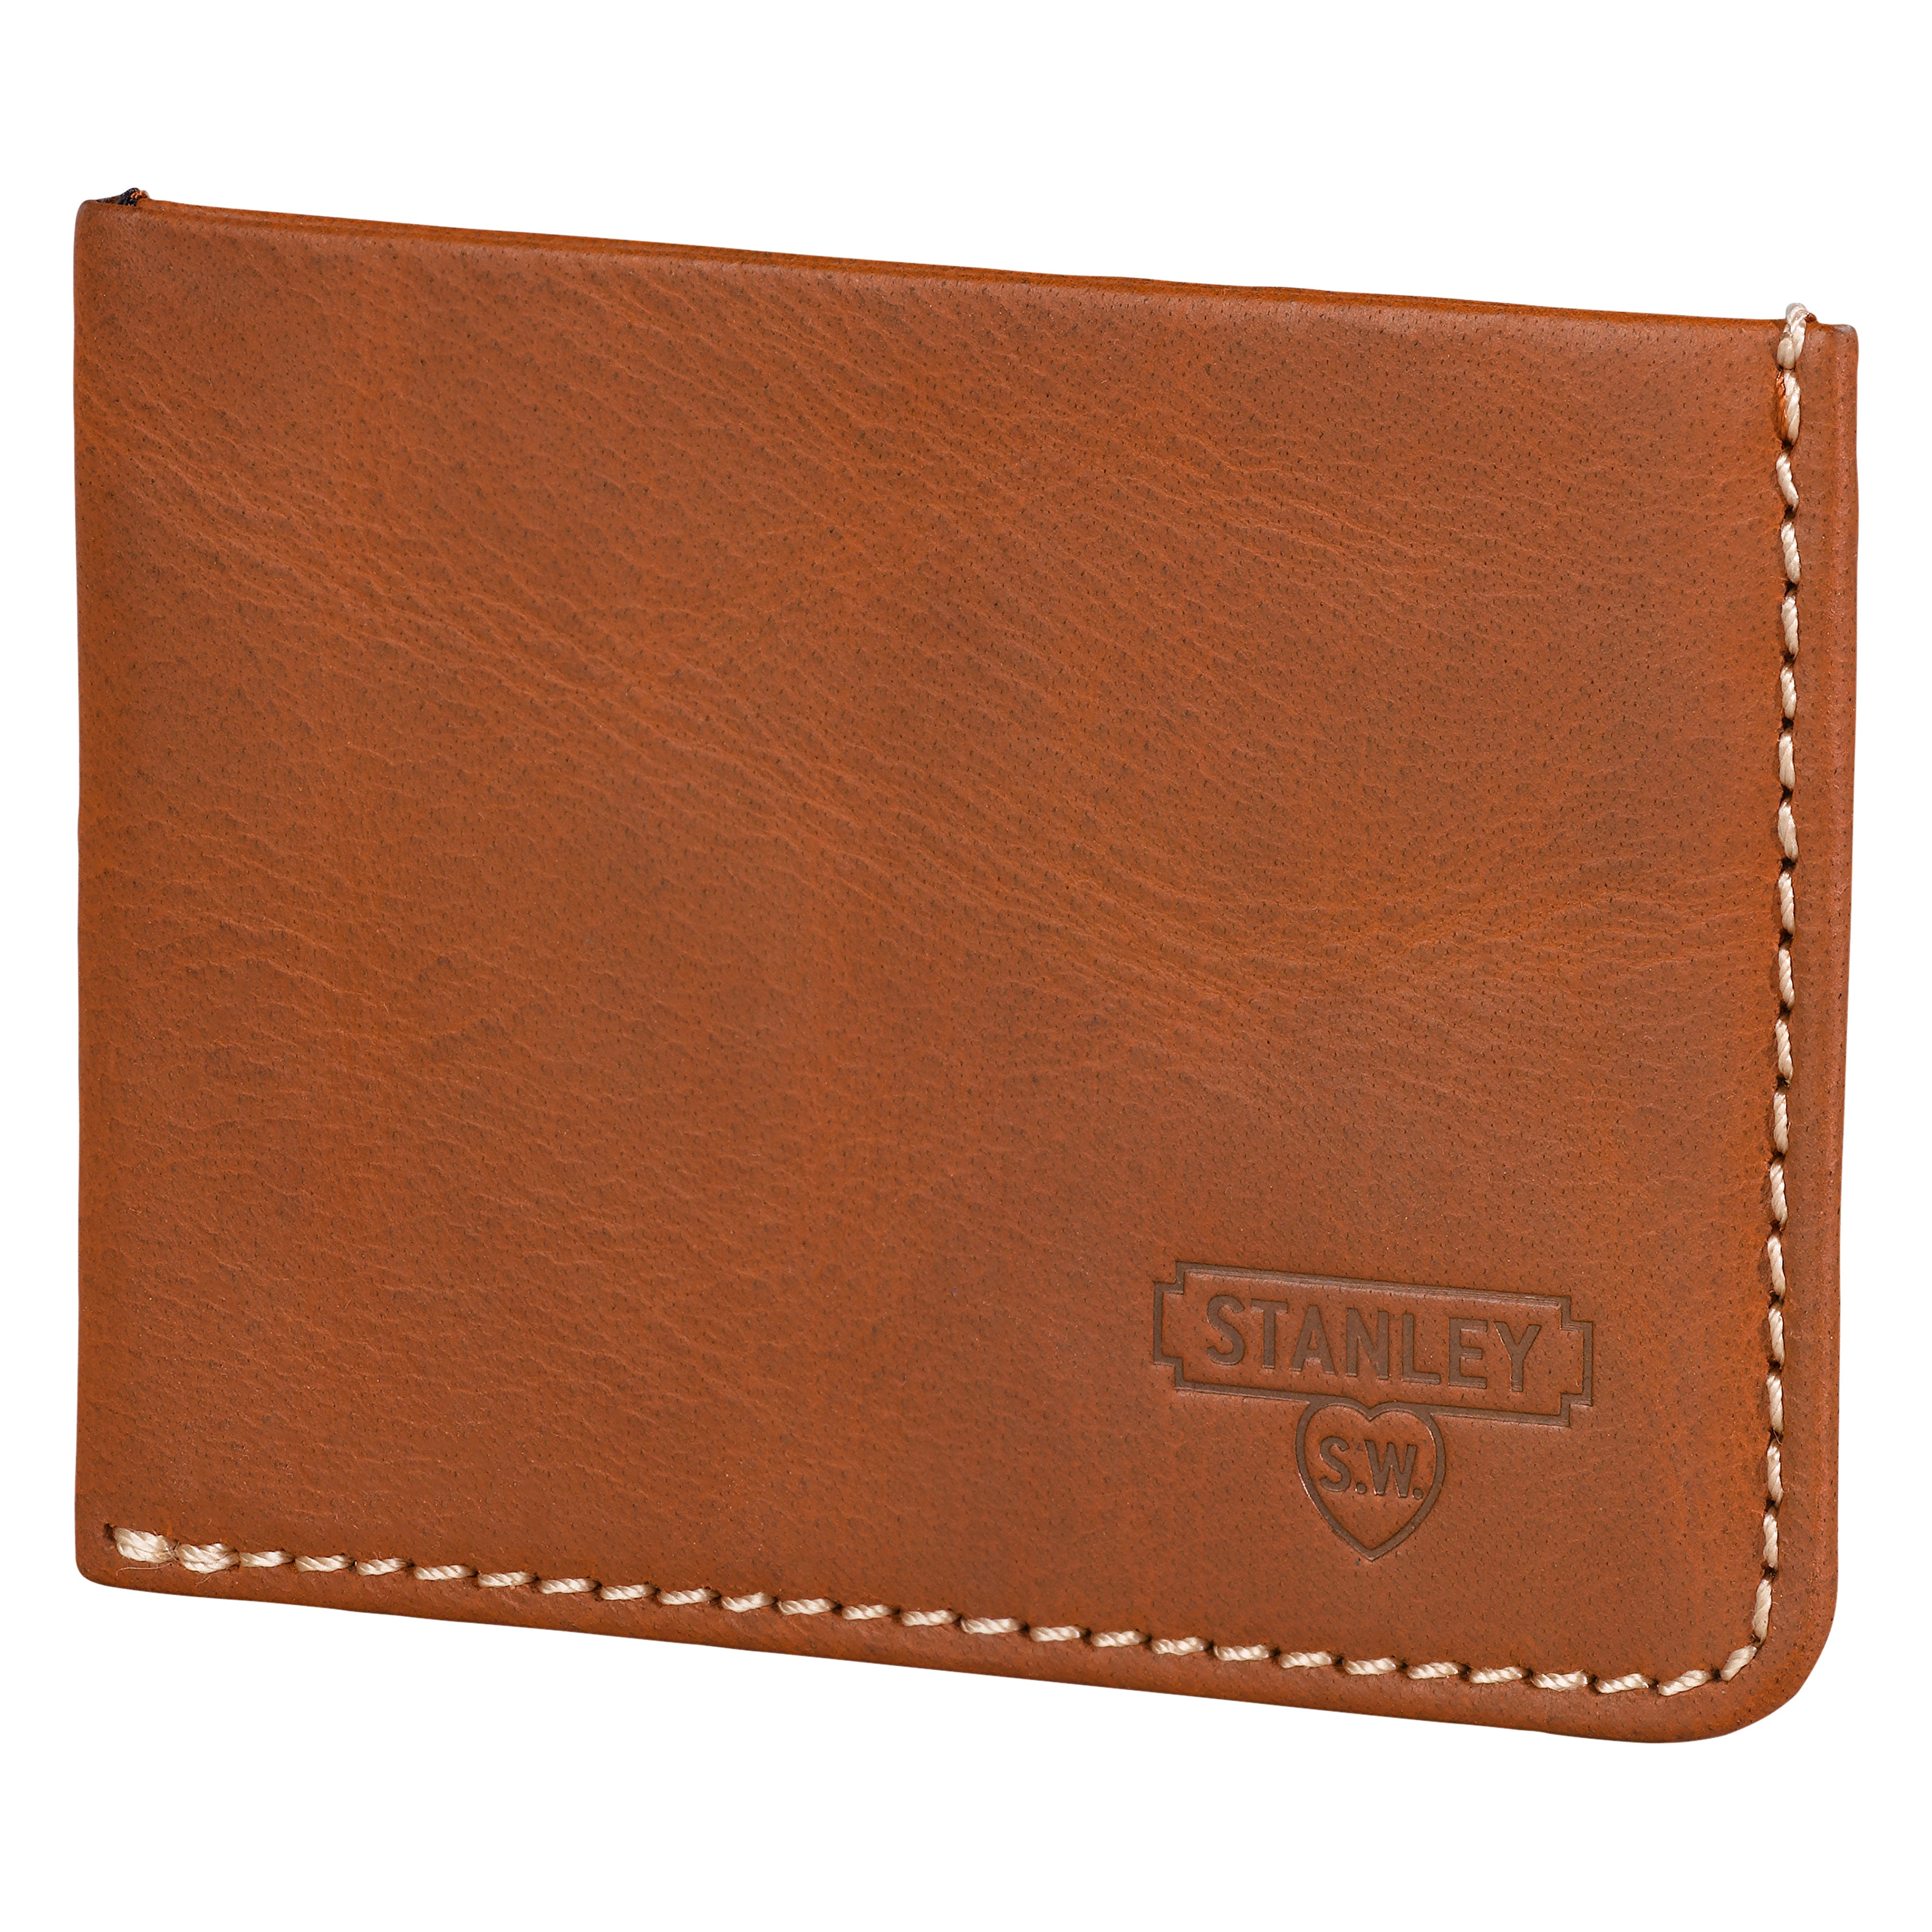 Stanley Tan Card Wallet